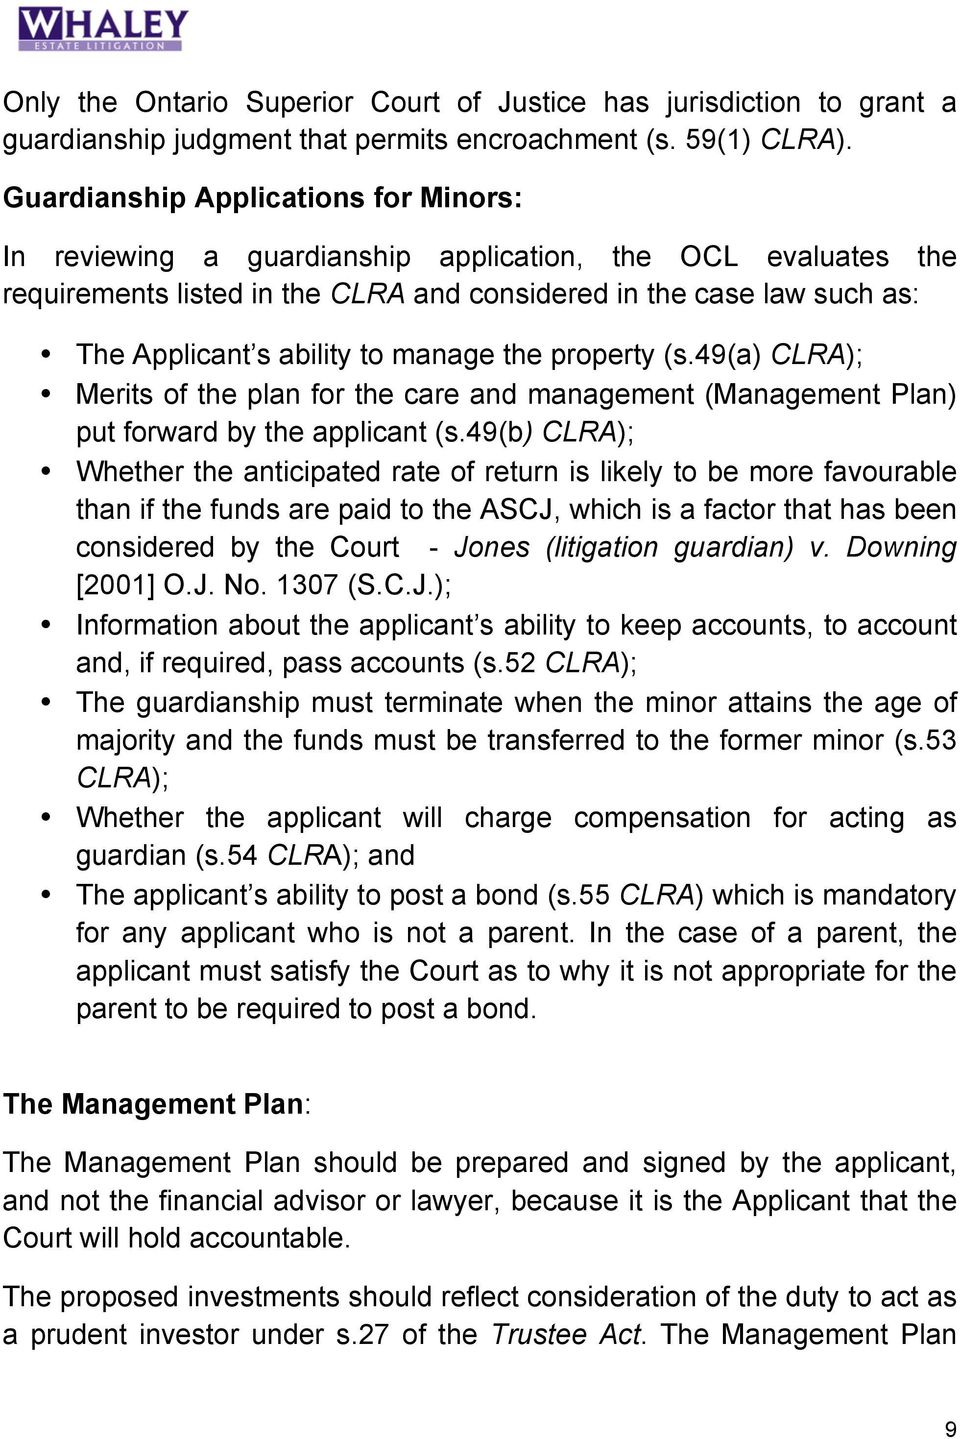 manage the property (s.49(a) CLRA); Merits of the plan for the care and management (Management Plan) put forward by the applicant (s.